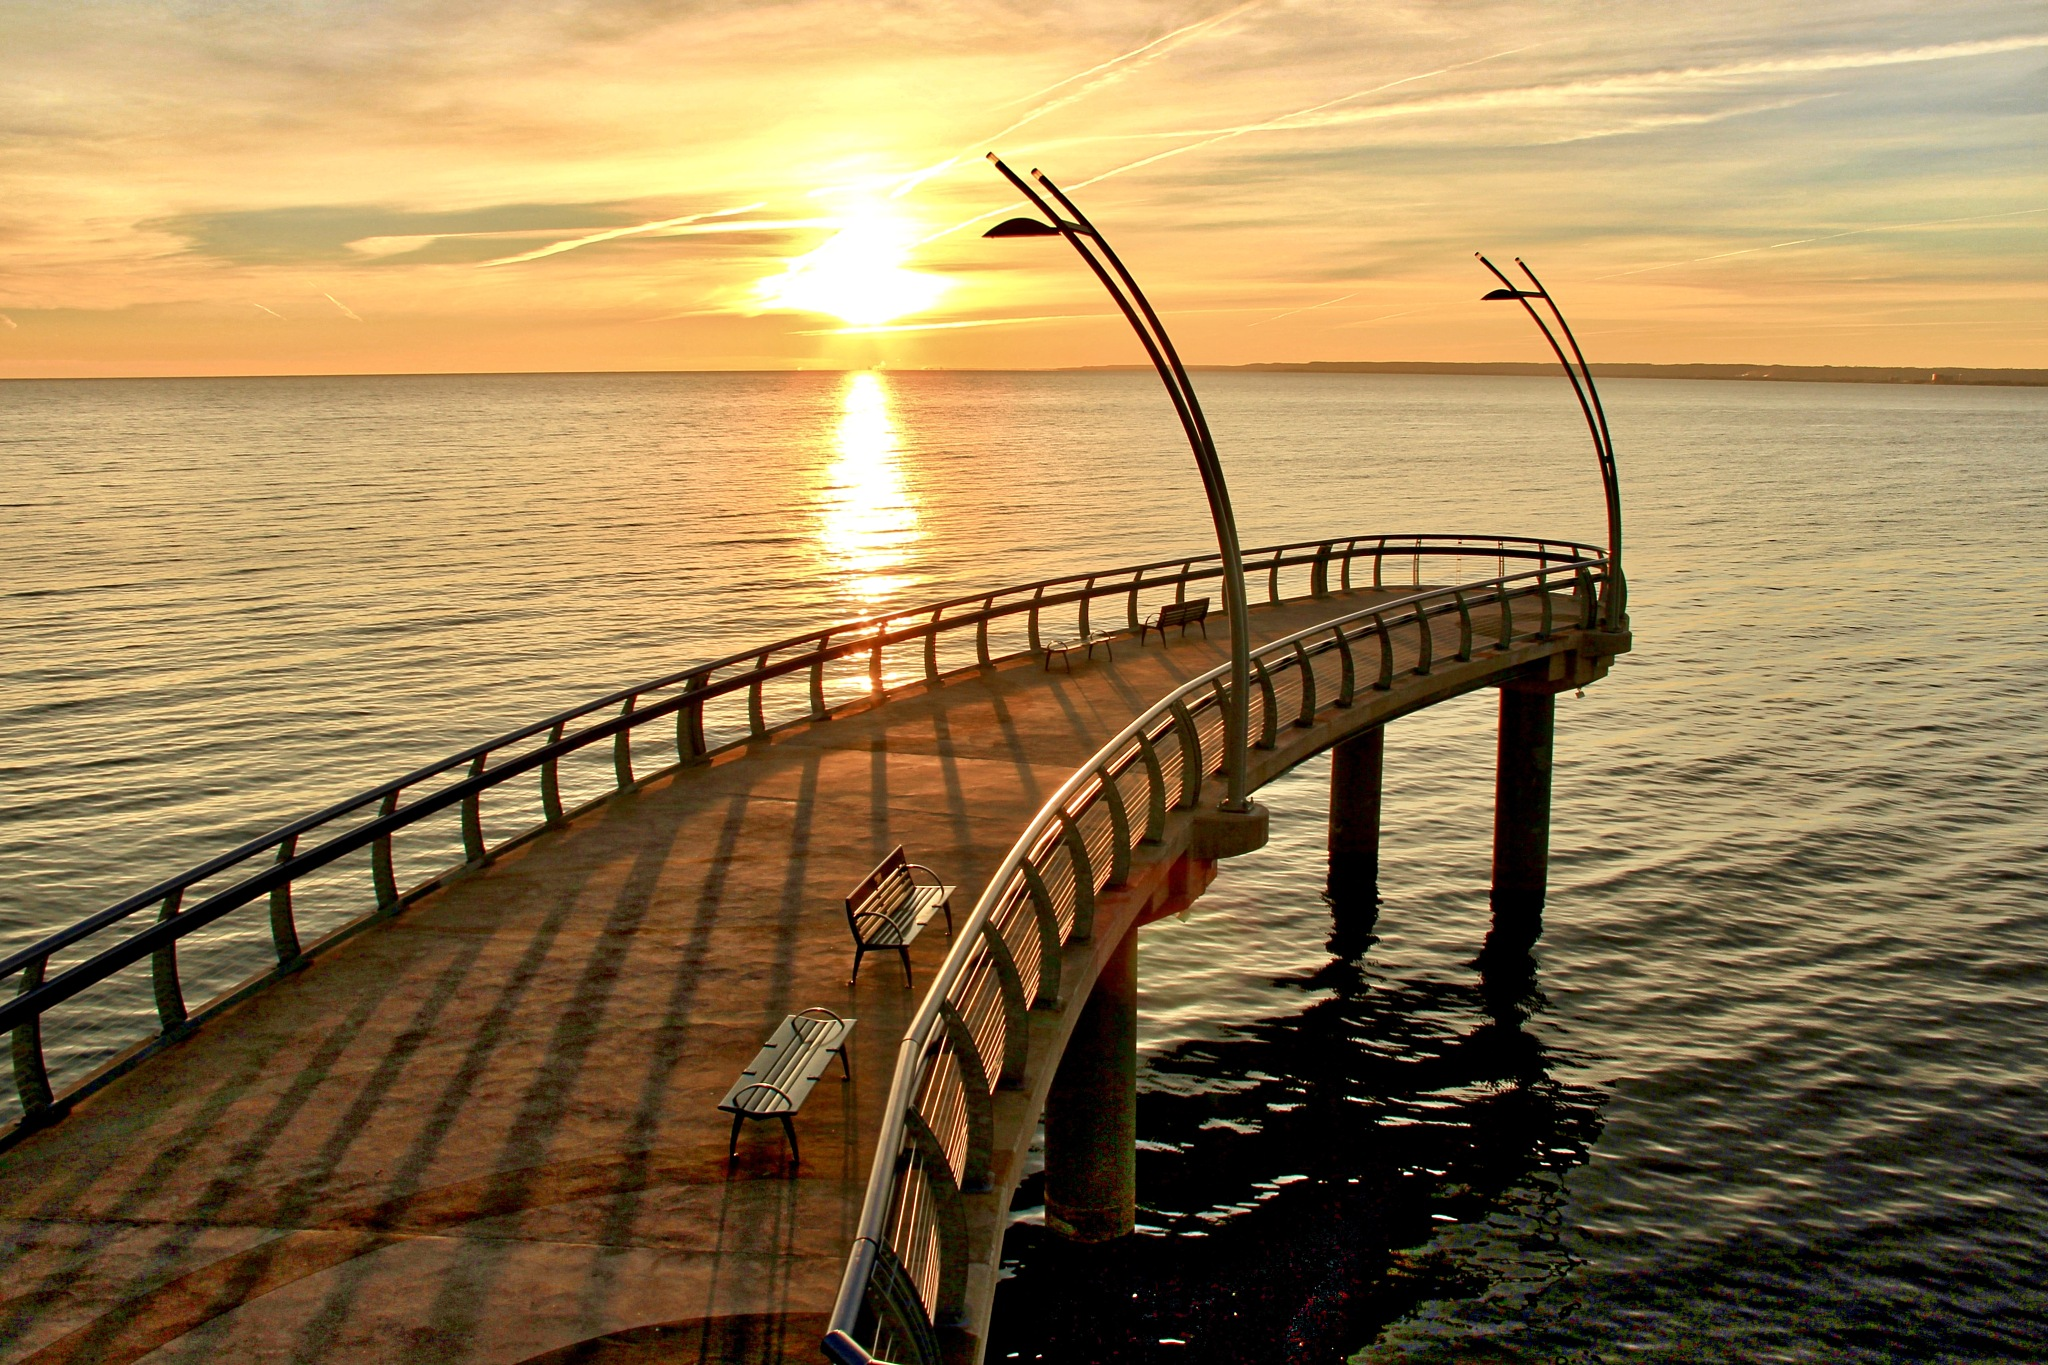 Morning Pier by gerry.lewicki